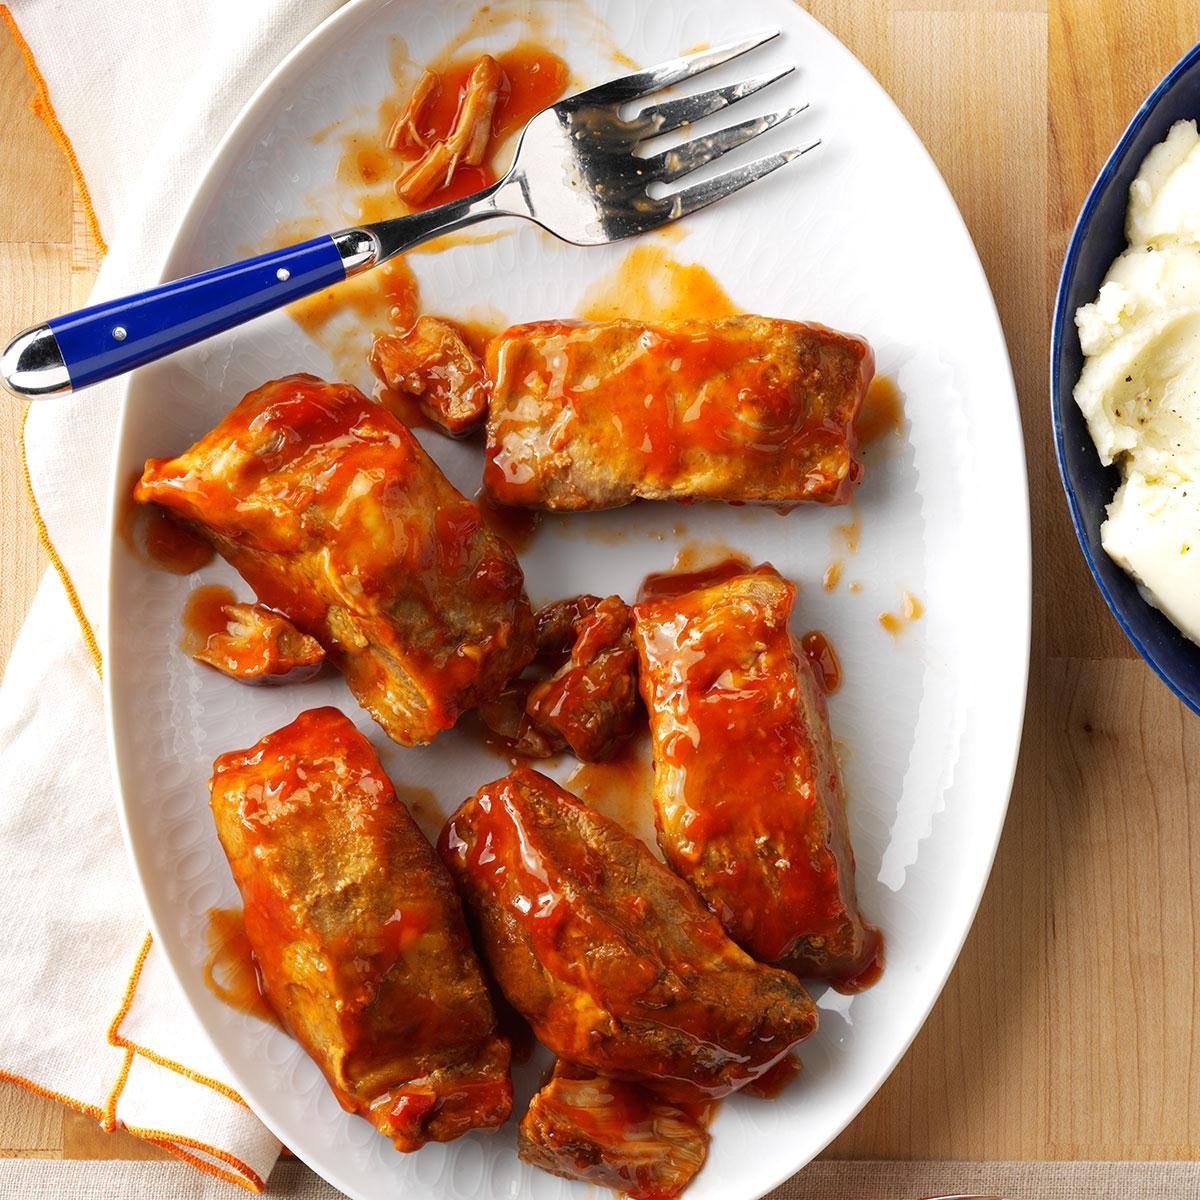 Recipe For Beef Country Style Ribs: Super Easy Country-Style Ribs Recipe